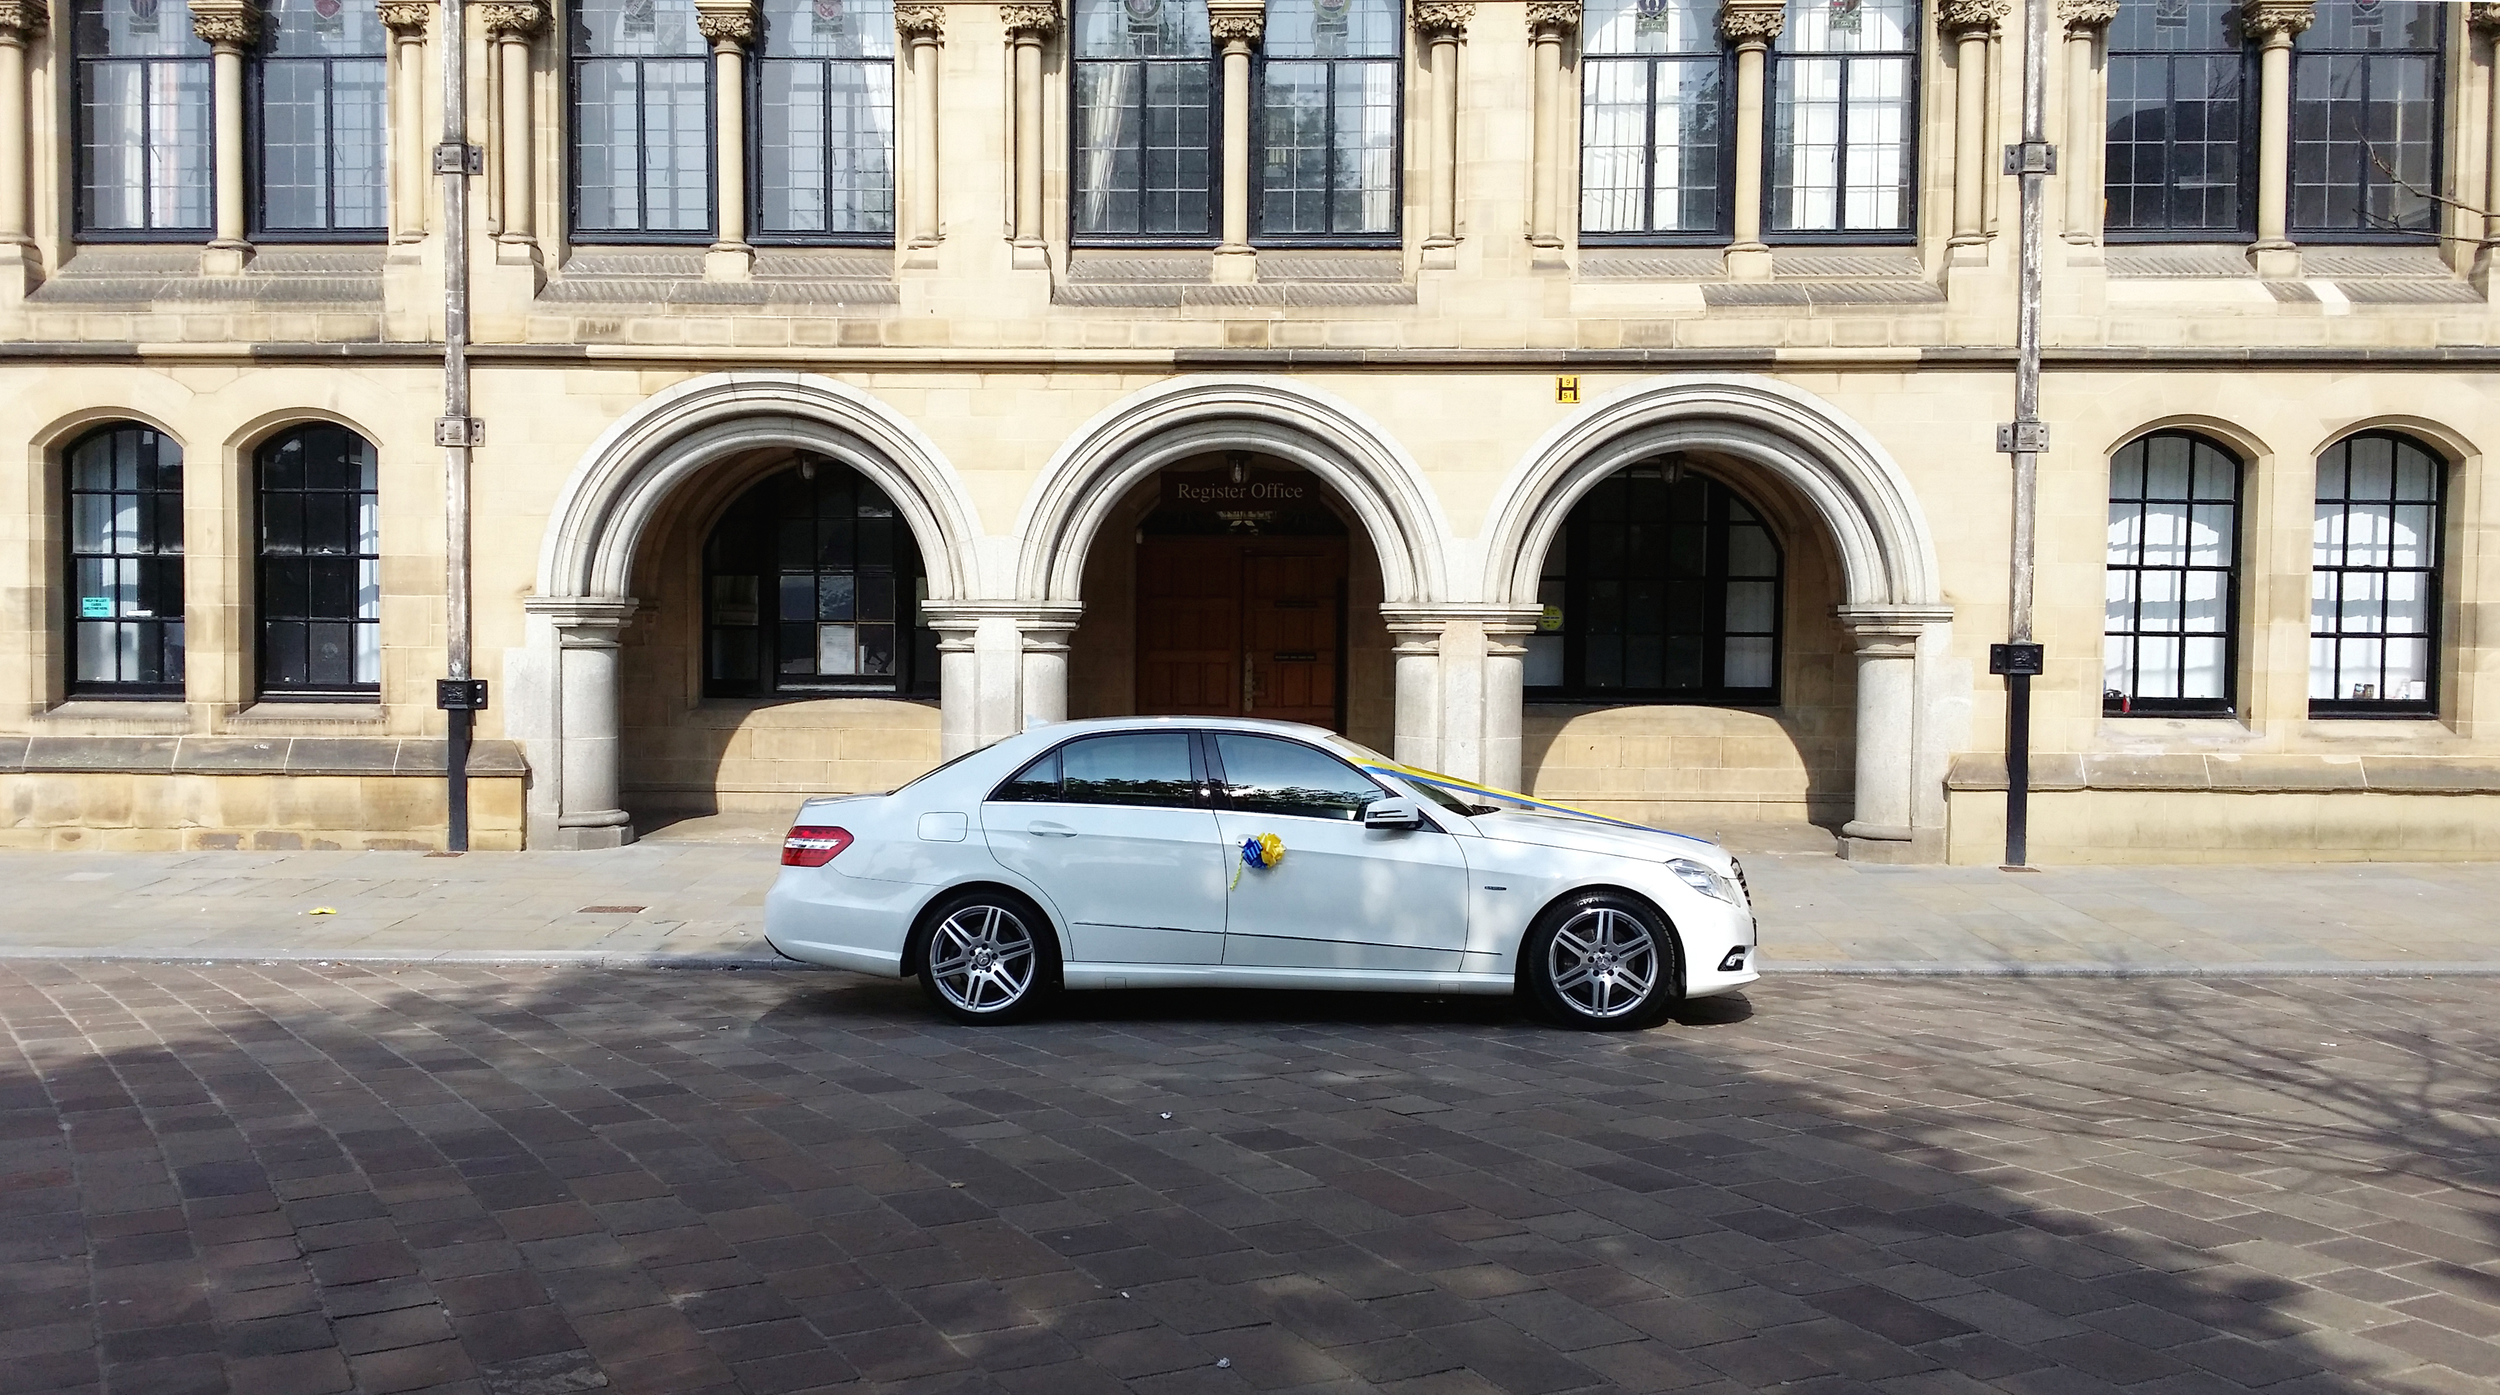 White Mercedes wedding car parked in front of Bradford City Hall archways